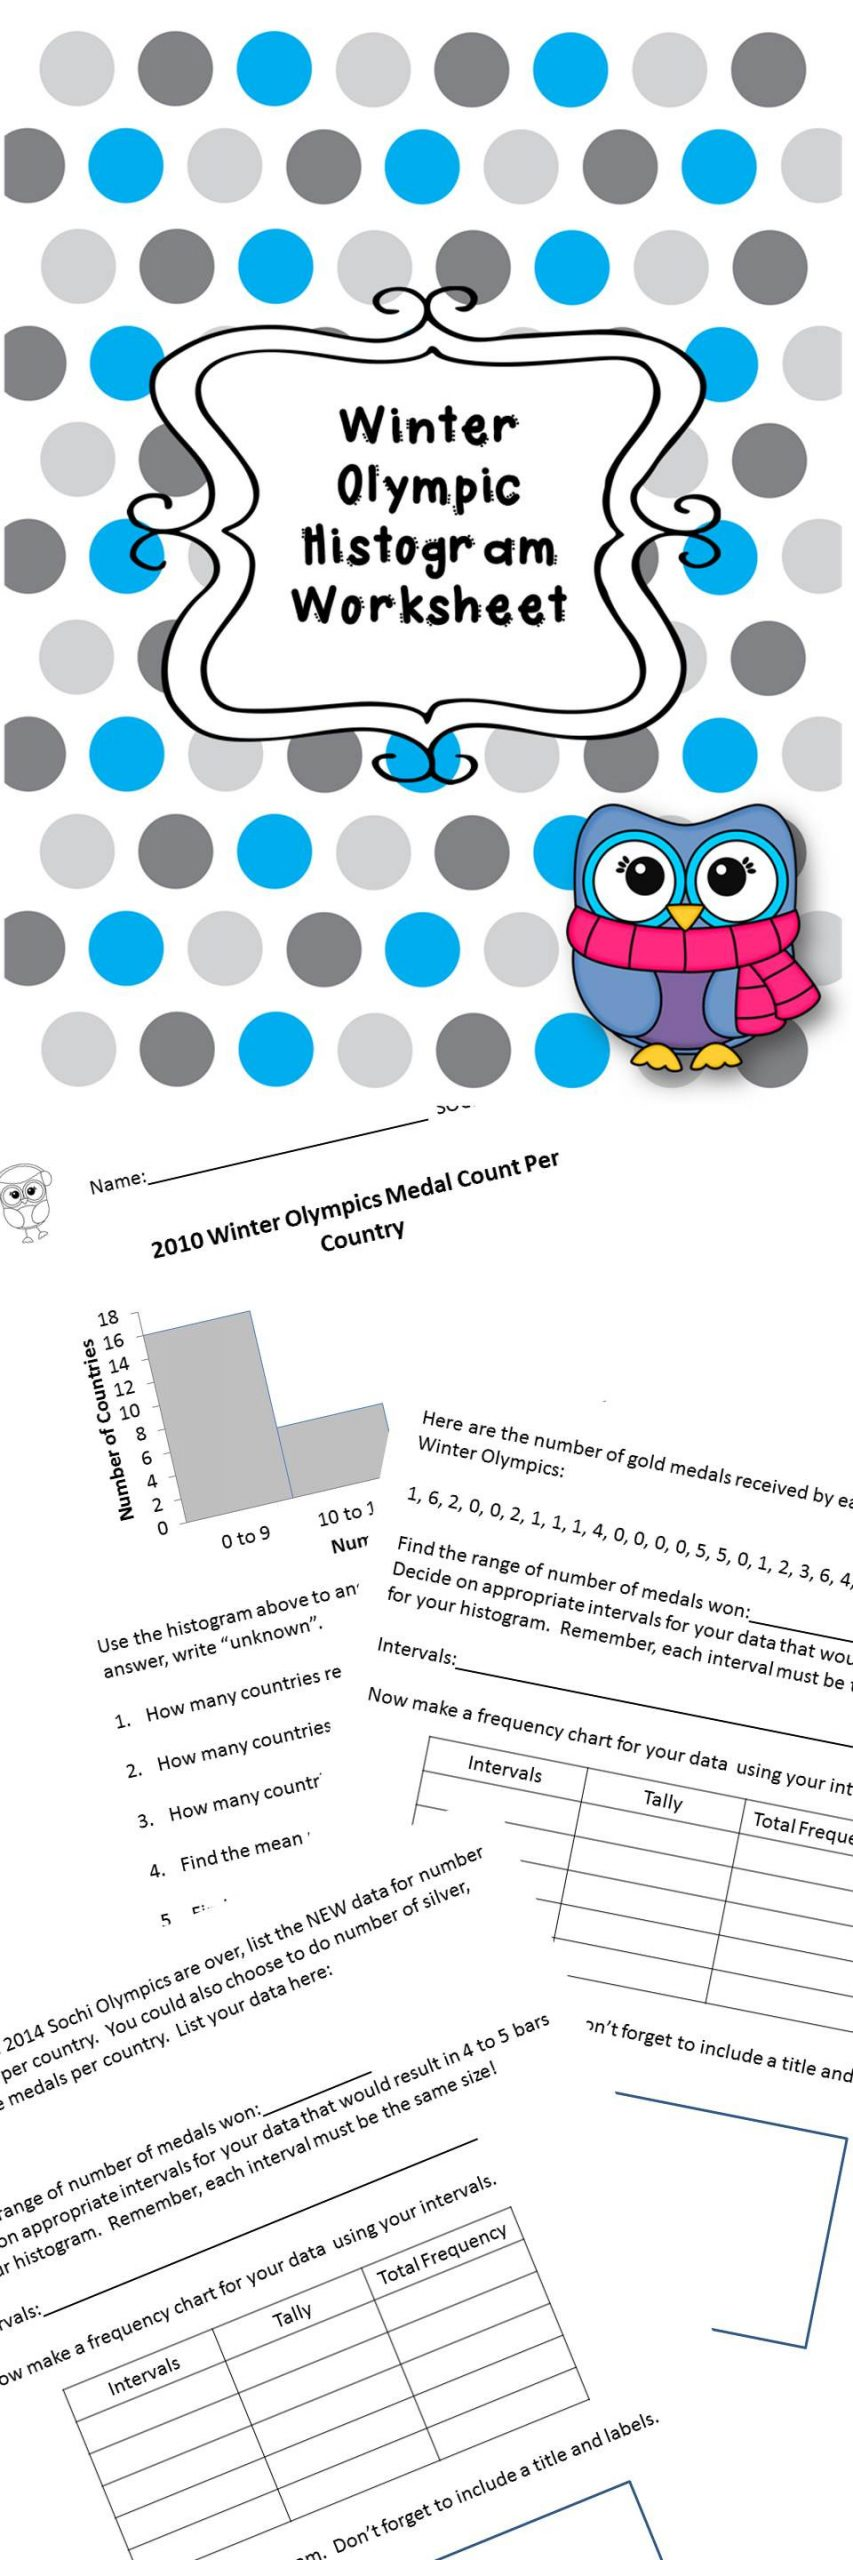 Histogram Worksheet Middle School Winter Olympic Histogram Worksheet